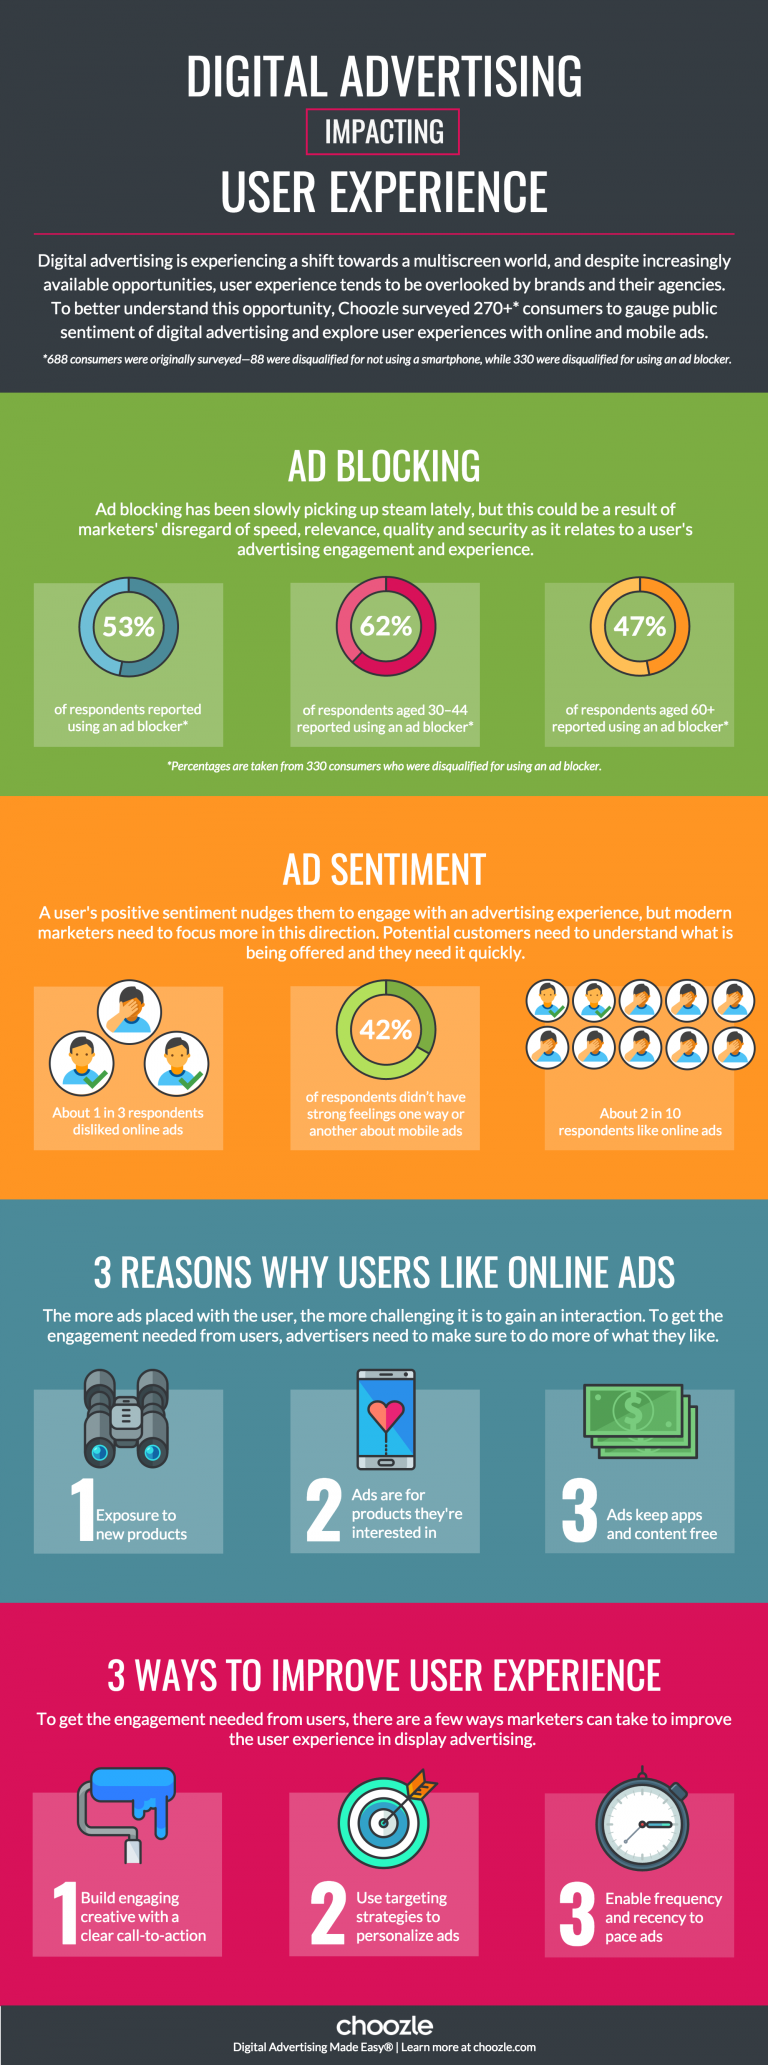 Digital Advertising Impacting User Experience - #Infographic